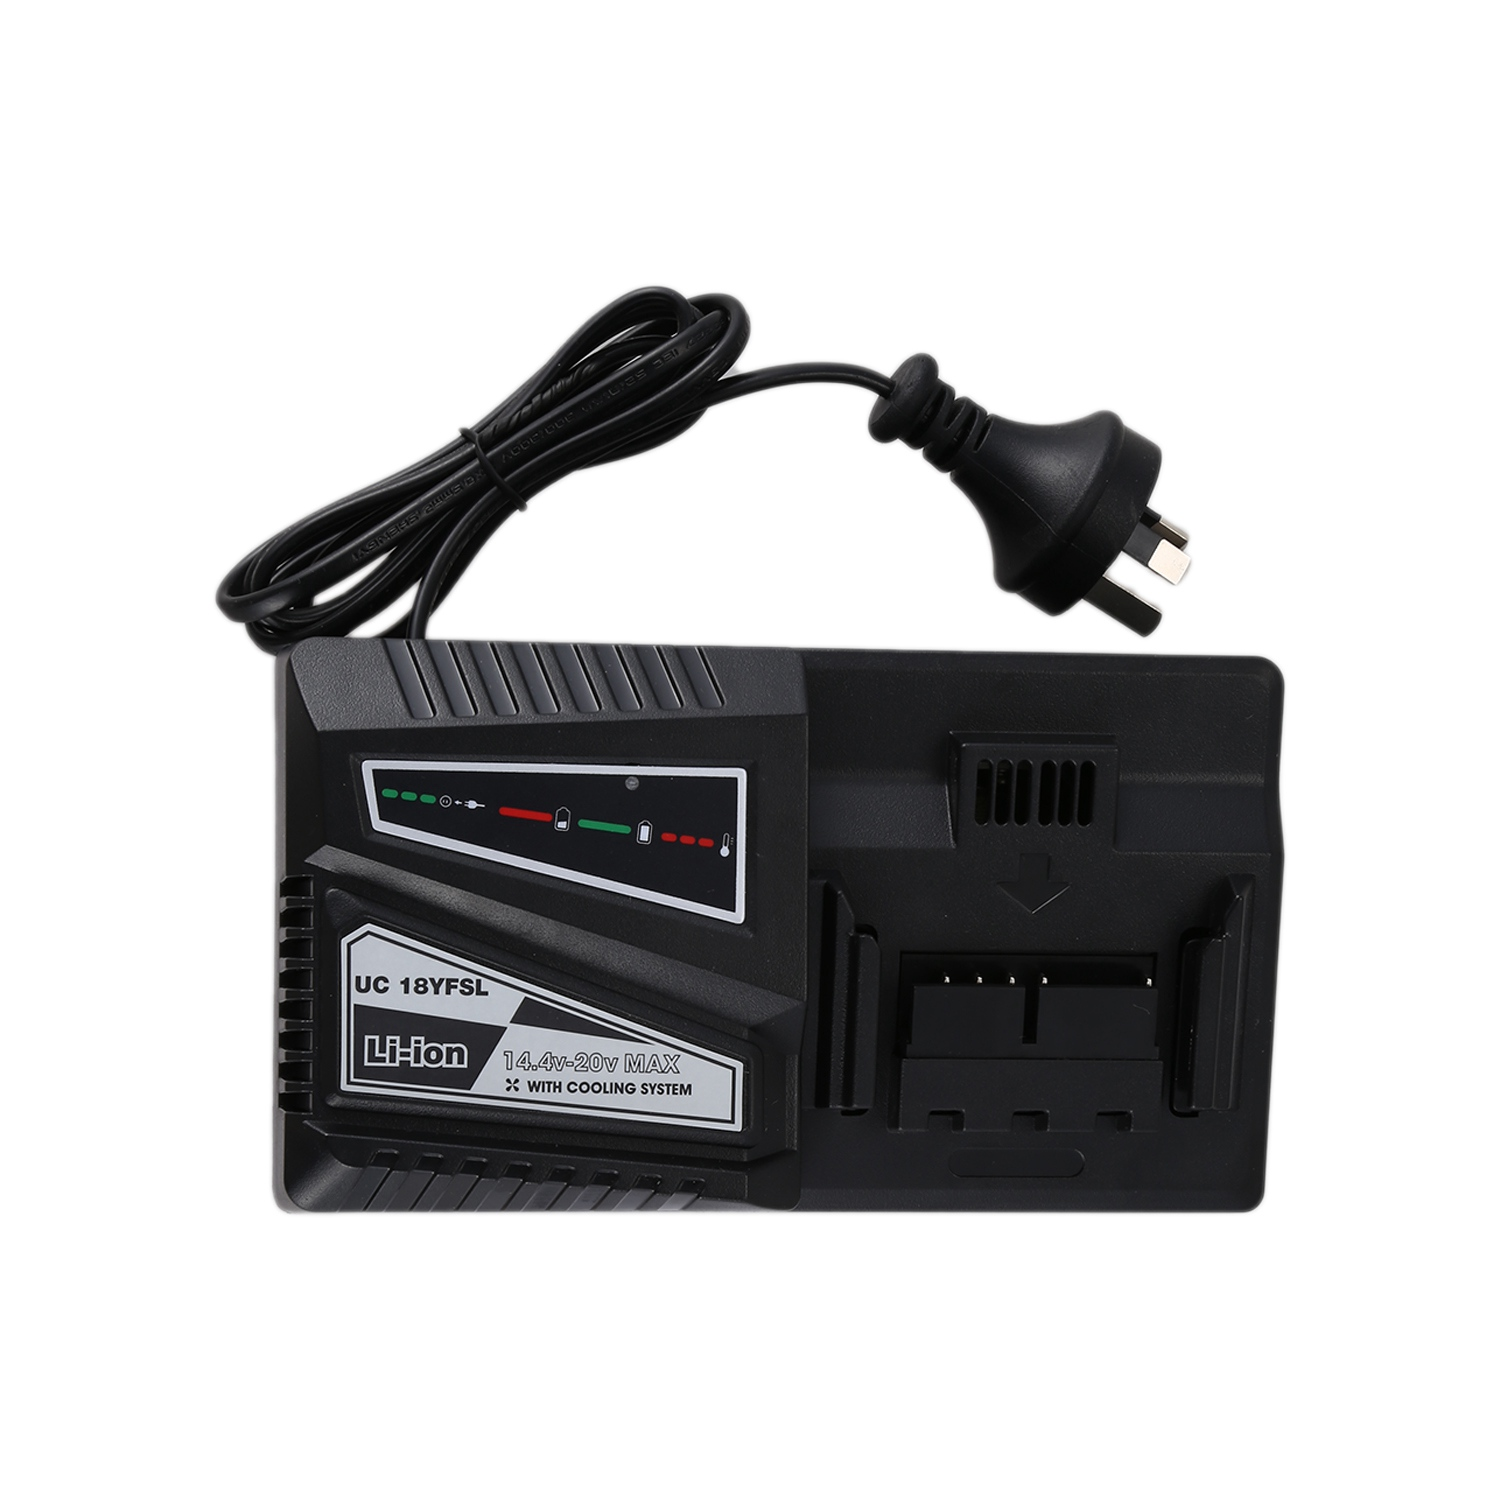 New replacement Hitachi fast charger 14.4/18V compatible current 4.5A Lithium Battery Charger For Uc18Yfsl Bsl1415